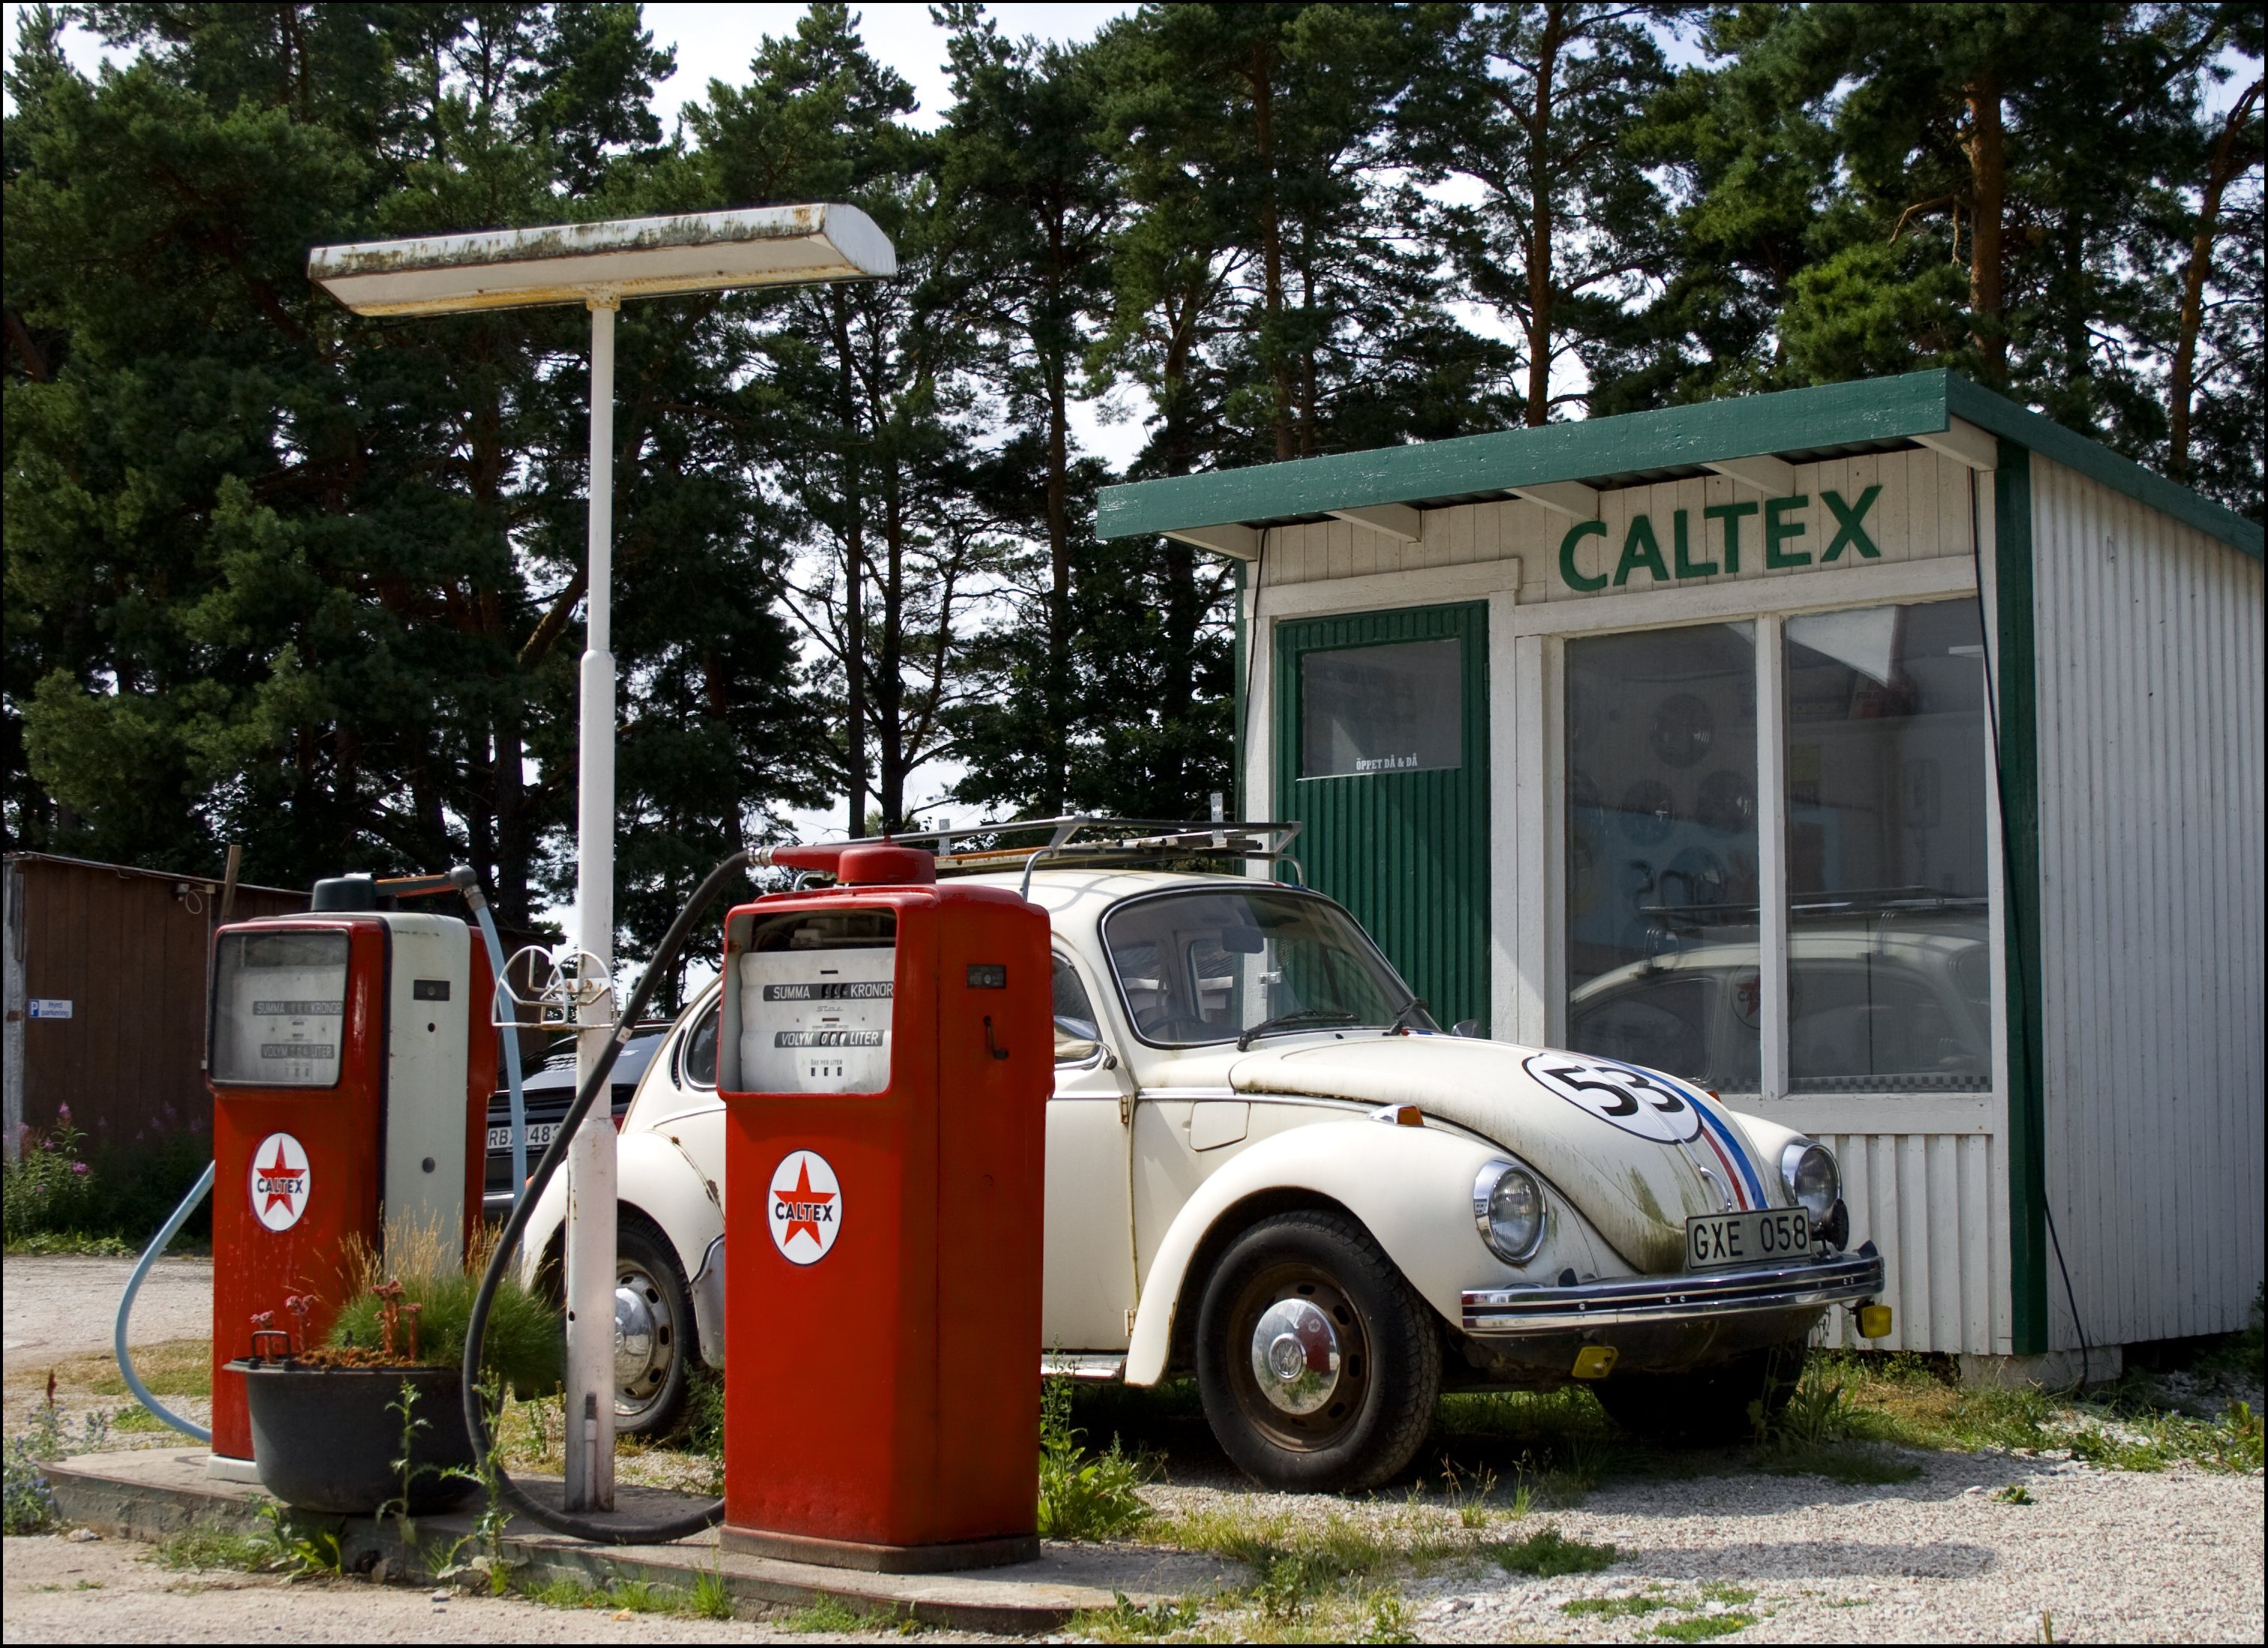 File:Caltex station Gotland.jpg - Wikimedia Commons